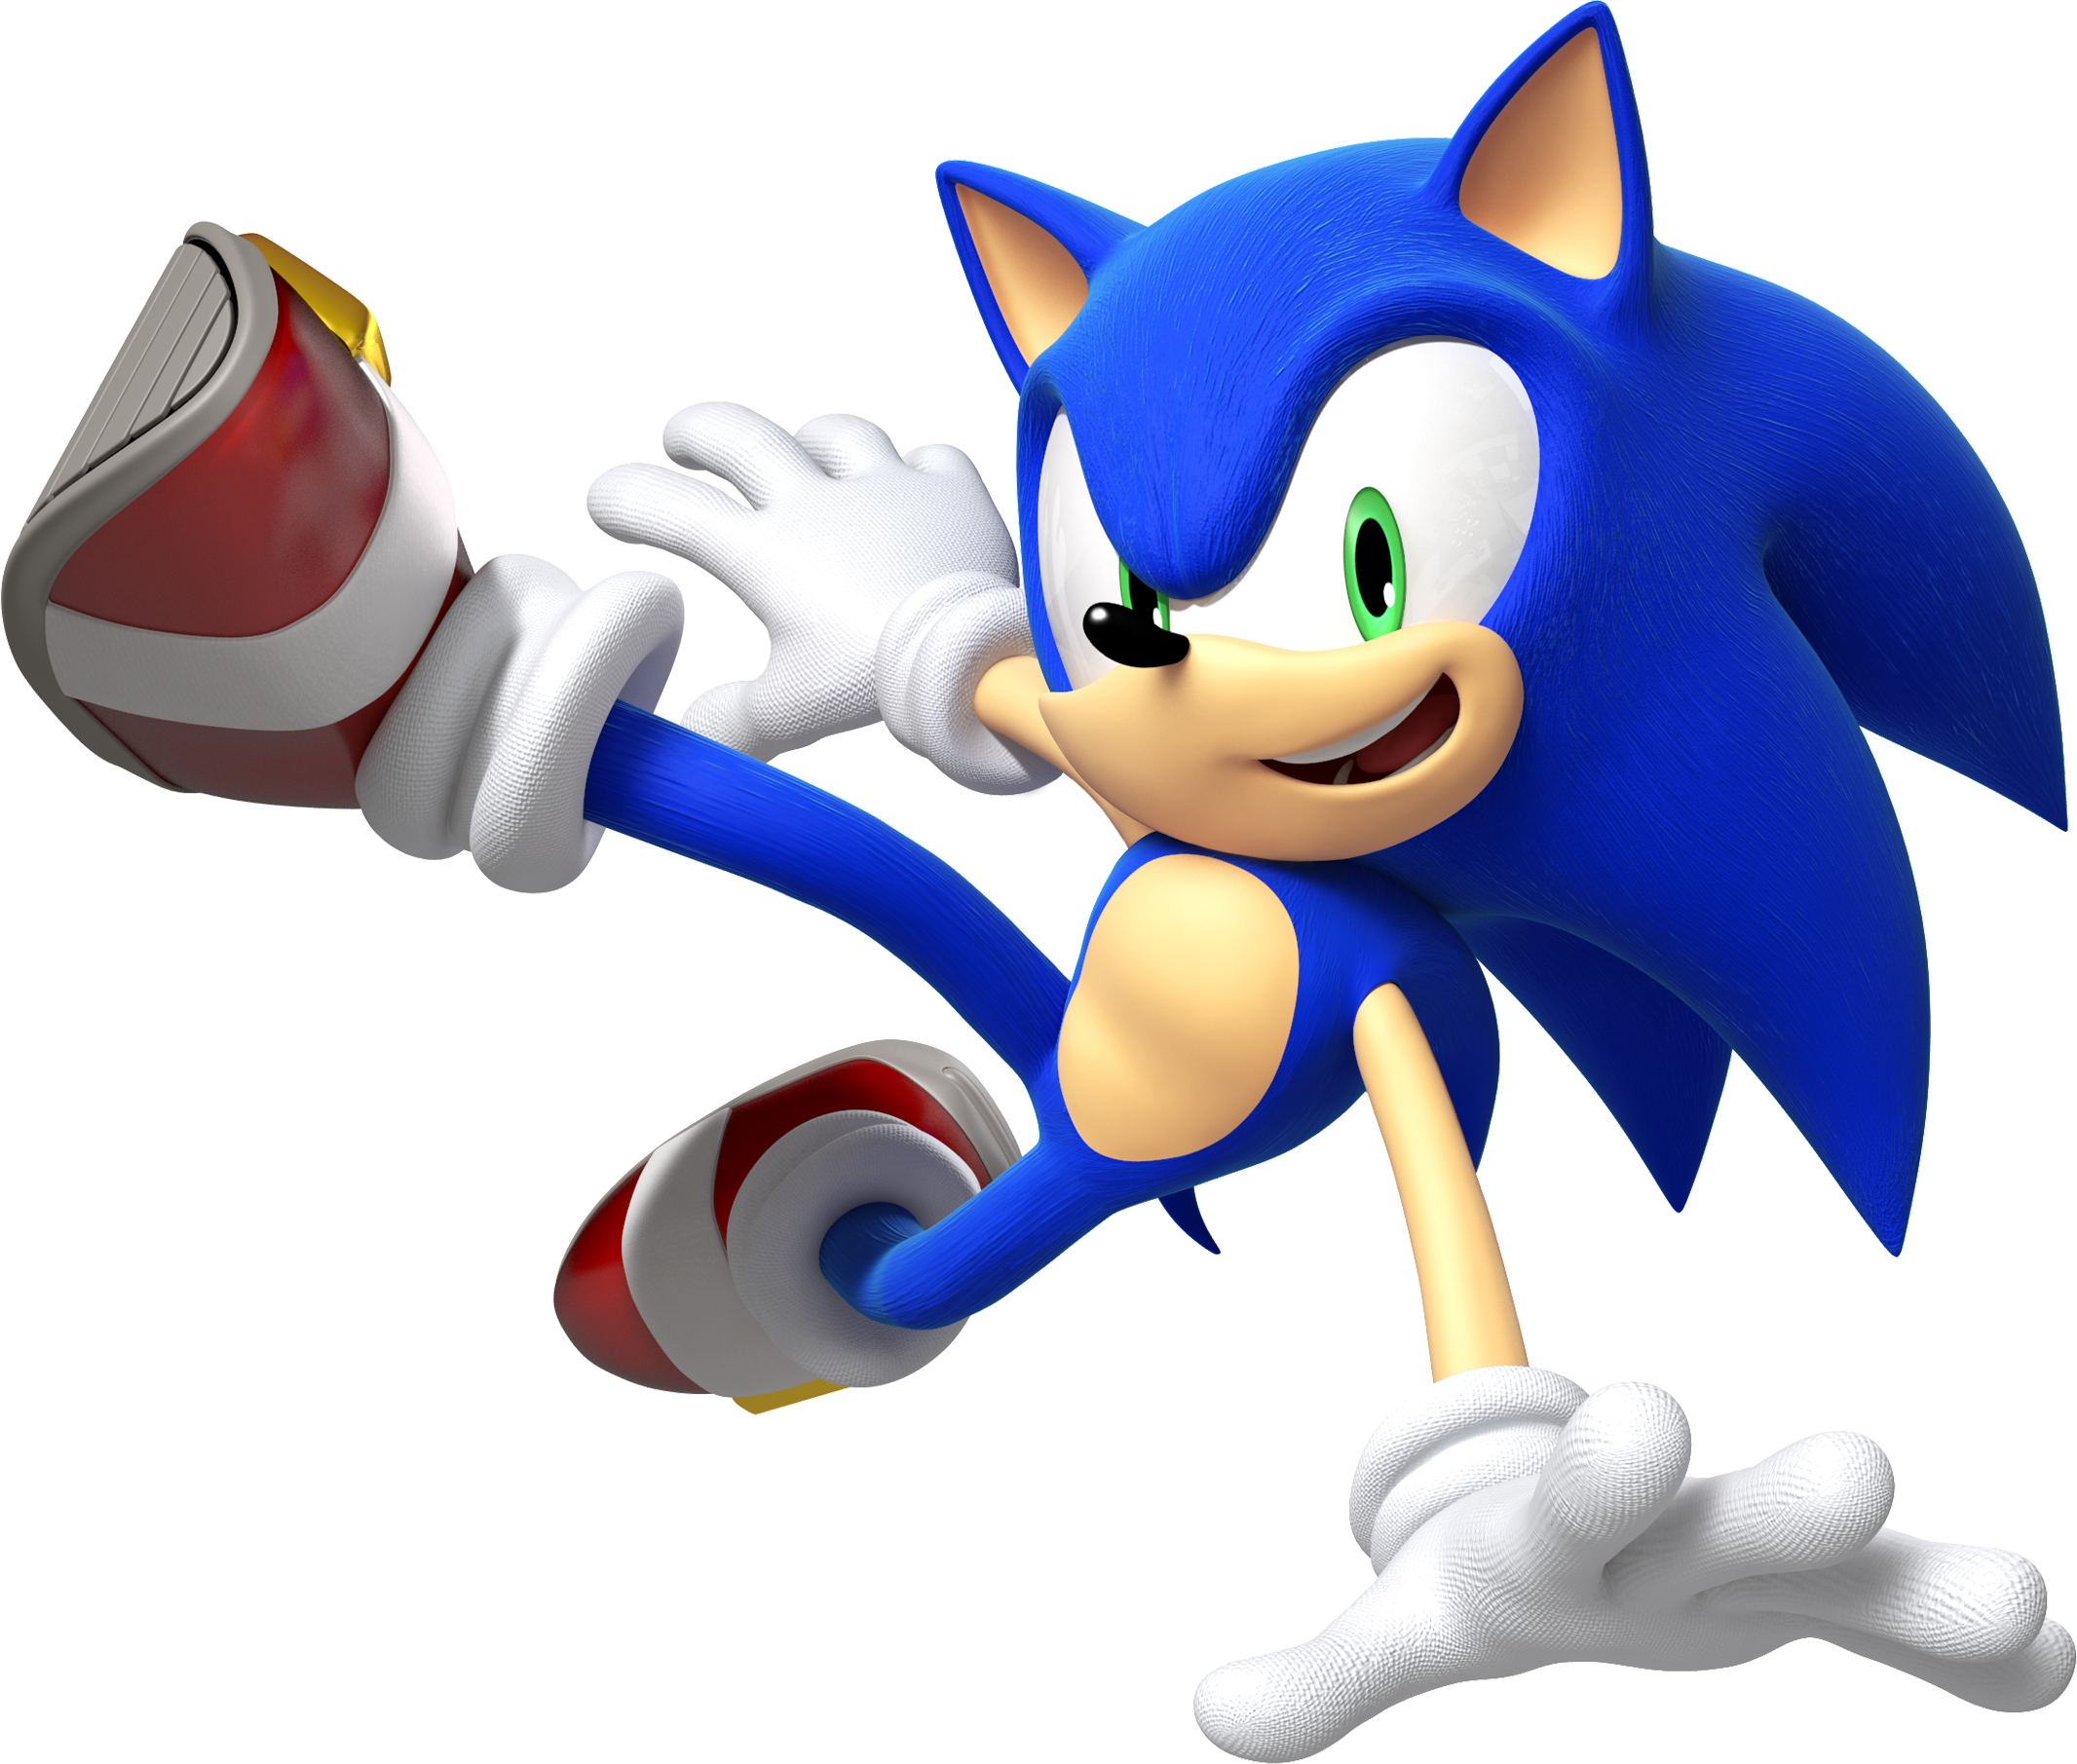 Sonic the Hedgehog | Pinterest | Anime and Video games